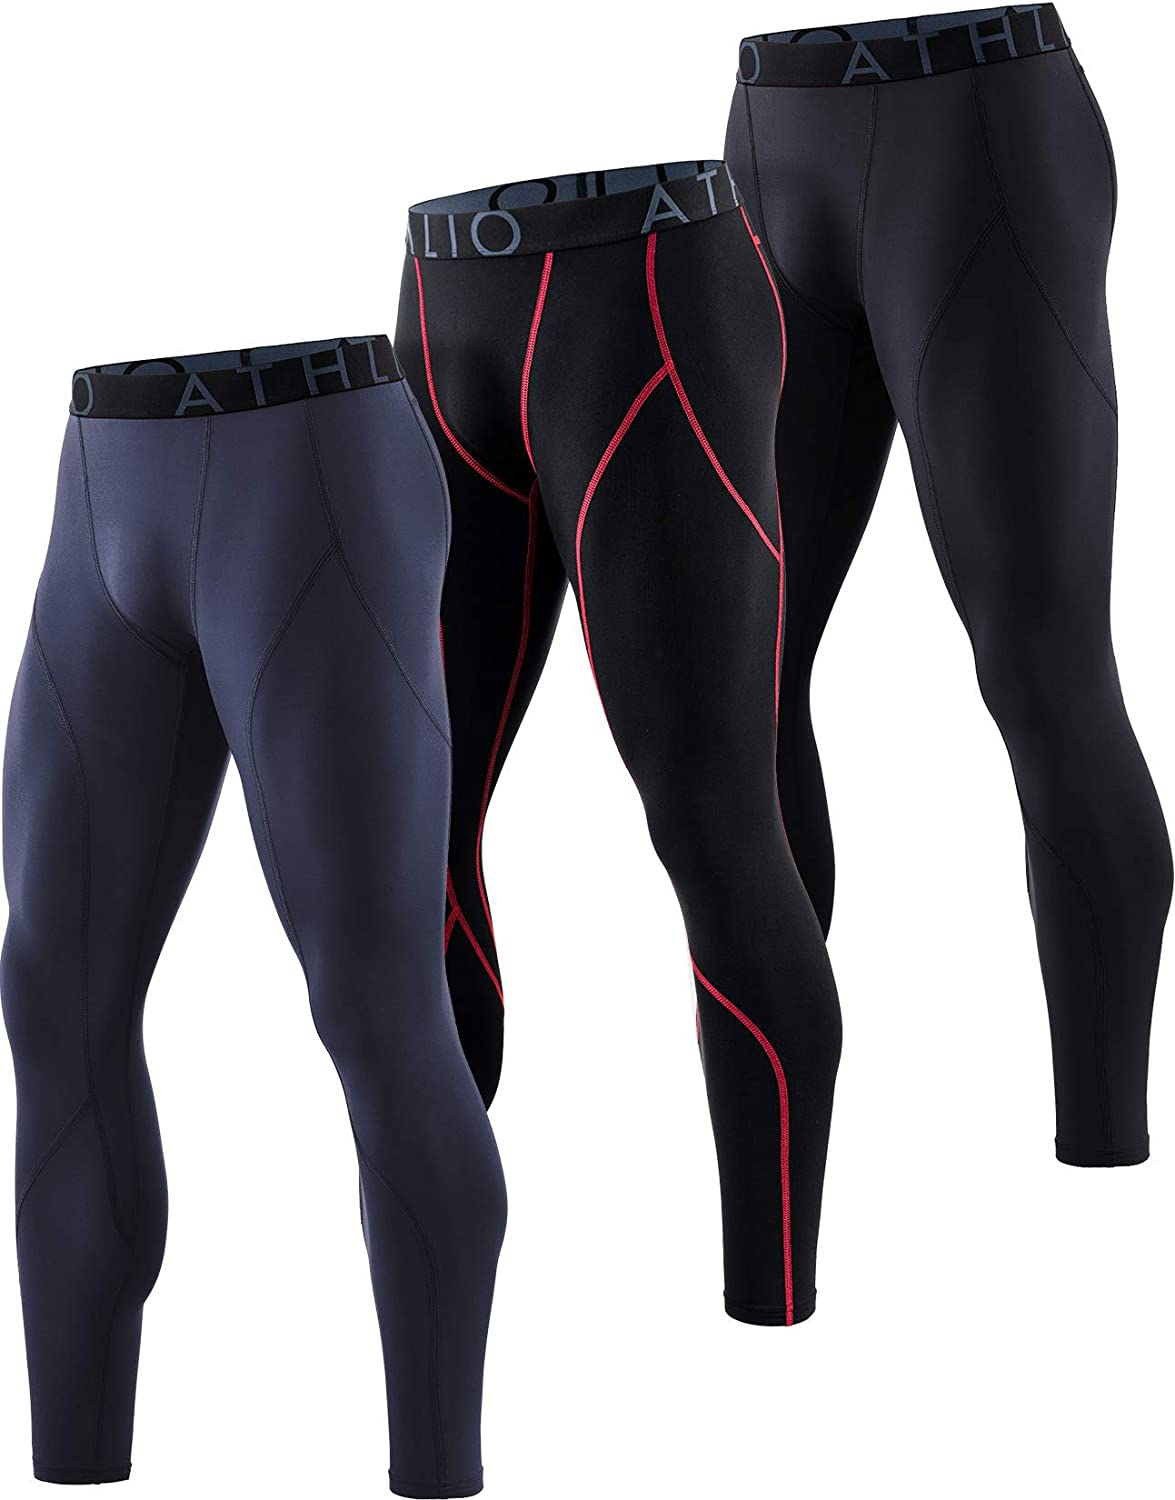 ATHLIO 1 or 3 Pack Men's Thermal Compression Pants, Athletic Running Tights & Sports Leggings, Wintergear Base Layer Bottoms